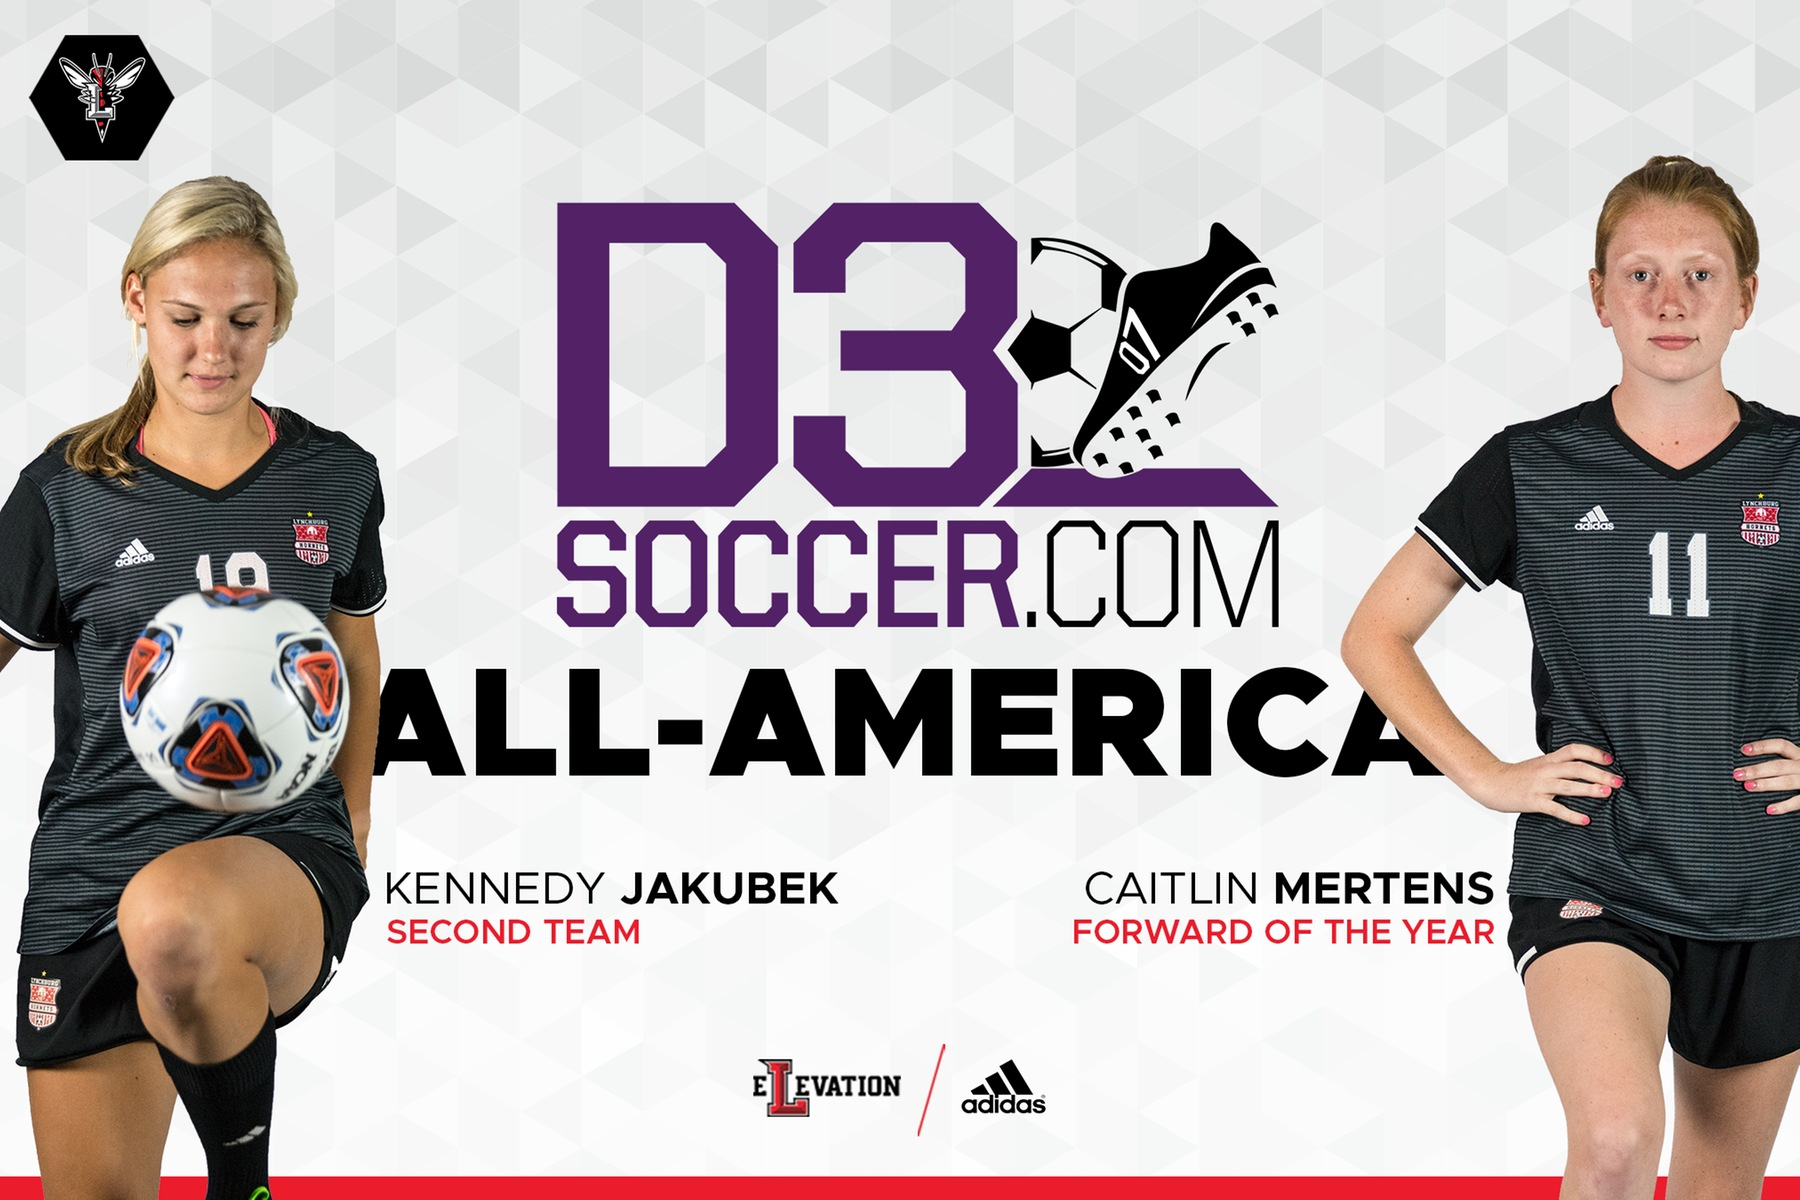 Graphic showing images of Jakubek and Mertens in uniform on white background. Text D3soccer.com all-america